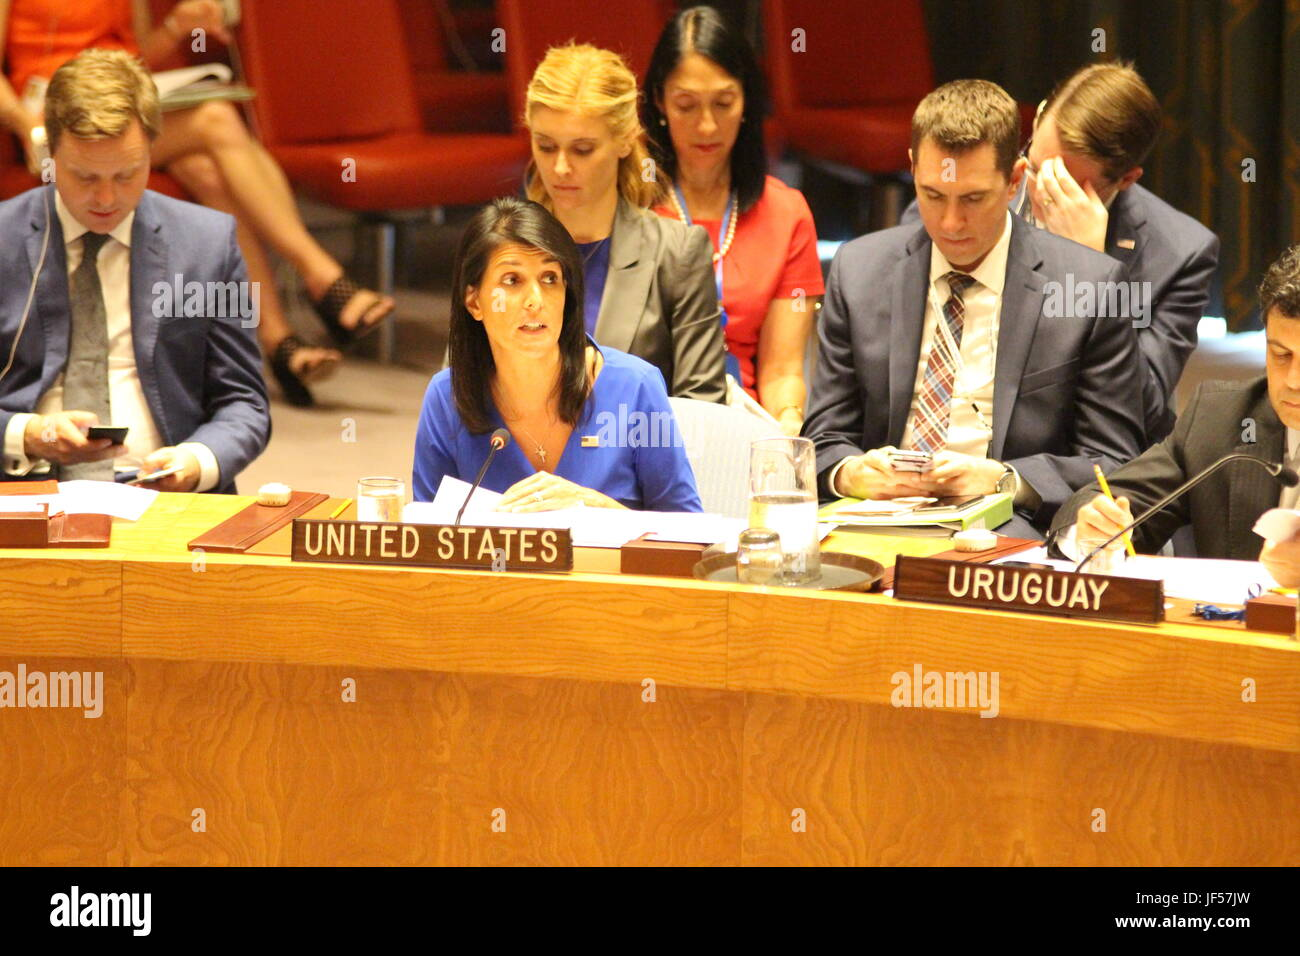 UN, New York, USA. 29th June, 2017. US Ambassador Nikki Haley criticized Iran in the UN Security Council, making - Stock Image